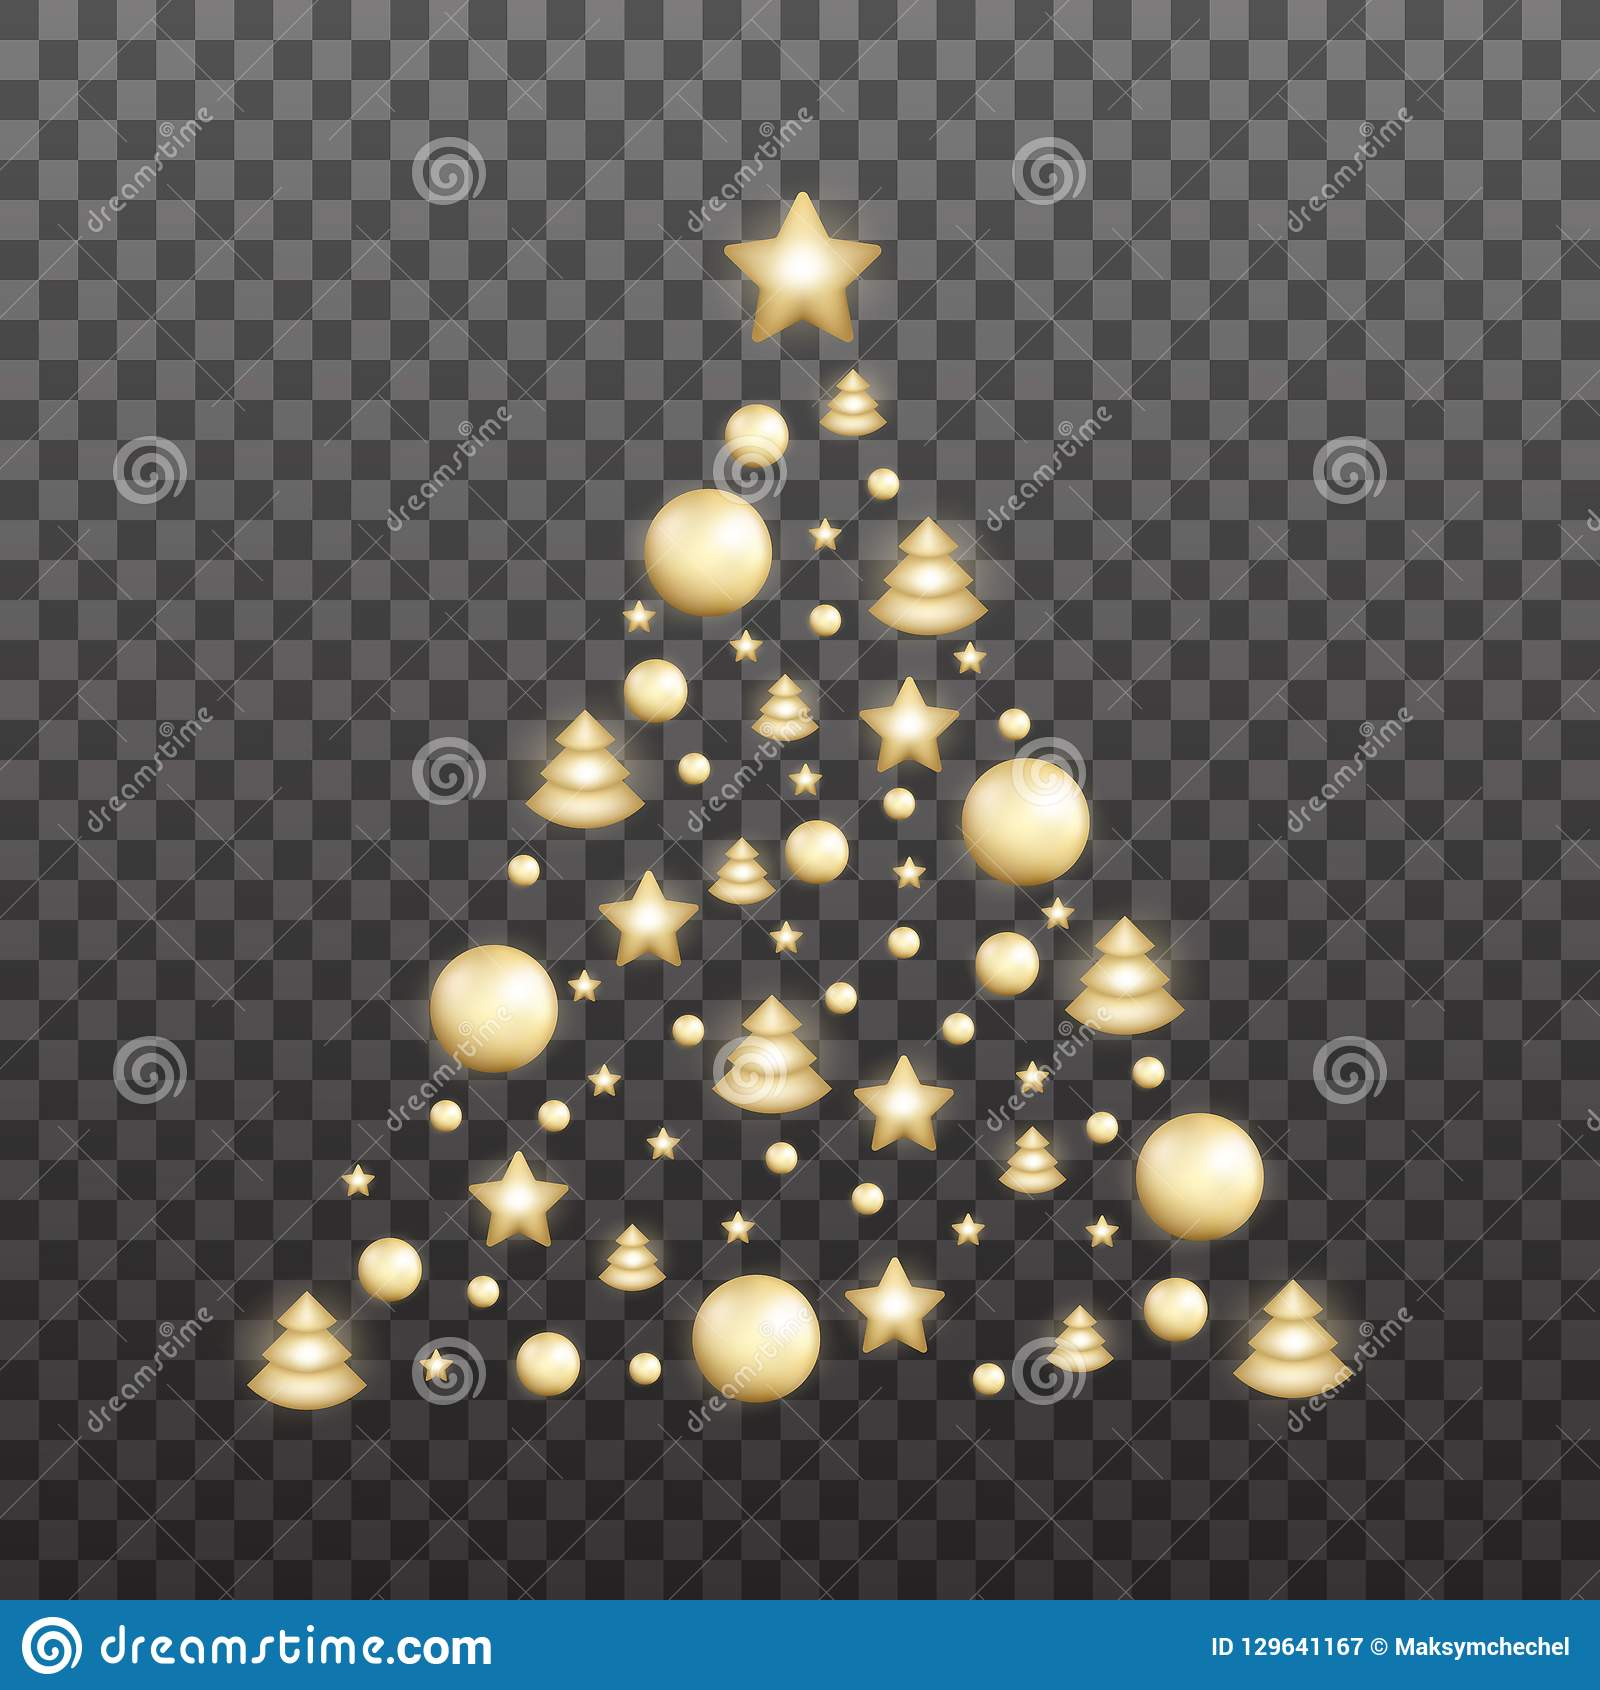 Christmas tree made of shiny gold decorations. Shiny Xmas balls collect in a Christmas tree shape